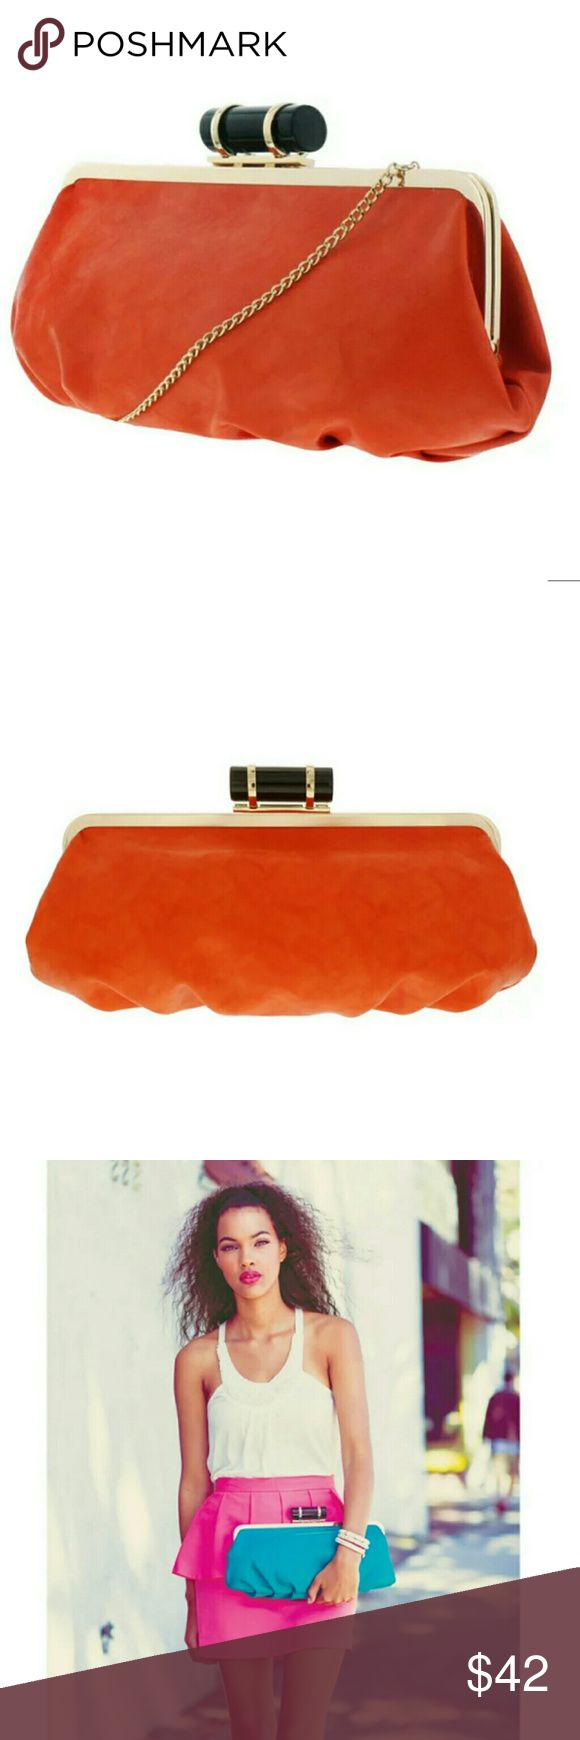 "Melie Bianco oversized clutch / cross body Pleated Clutch *Cylinder push lock *Chain handle detail *Handle Drop: 10 inch additional strap *Dimensions: 10.5""L x 6""H Melie Bianco Bags Clutches & Wristlets"